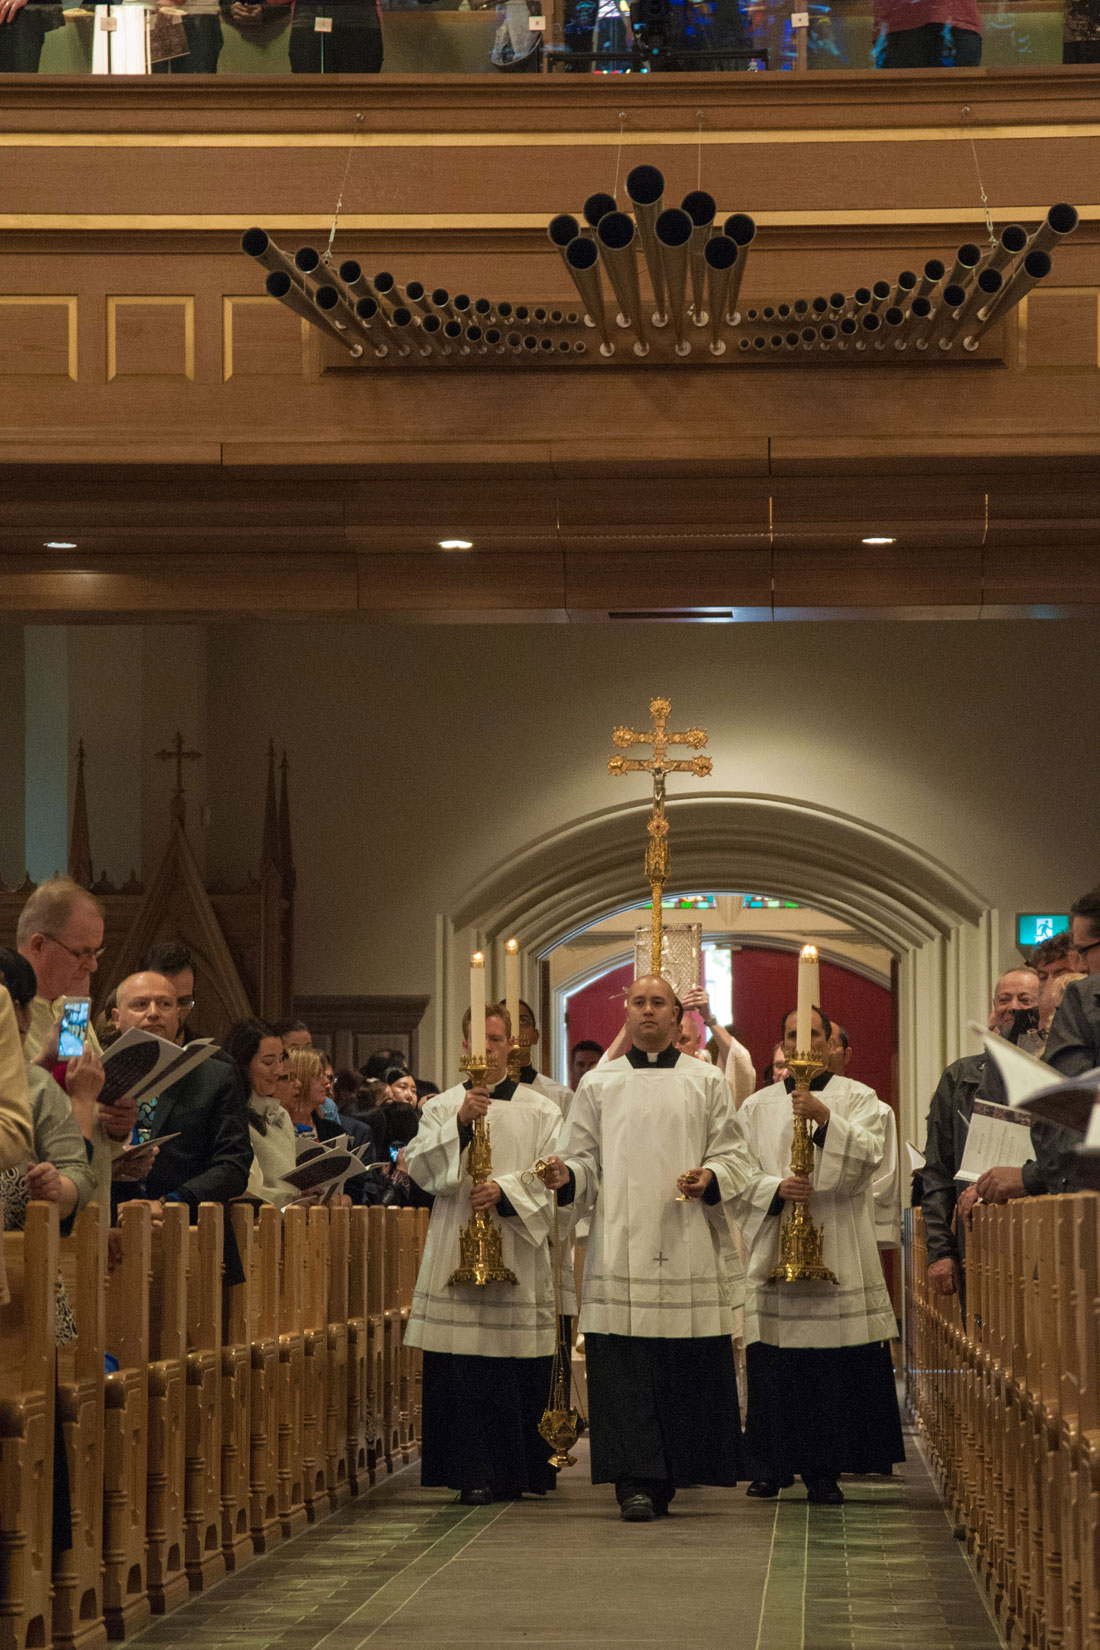 The workers' thanksgiving Mass at St. Michael's Cathedral Sept. 30. (Photo by Michael Swan)